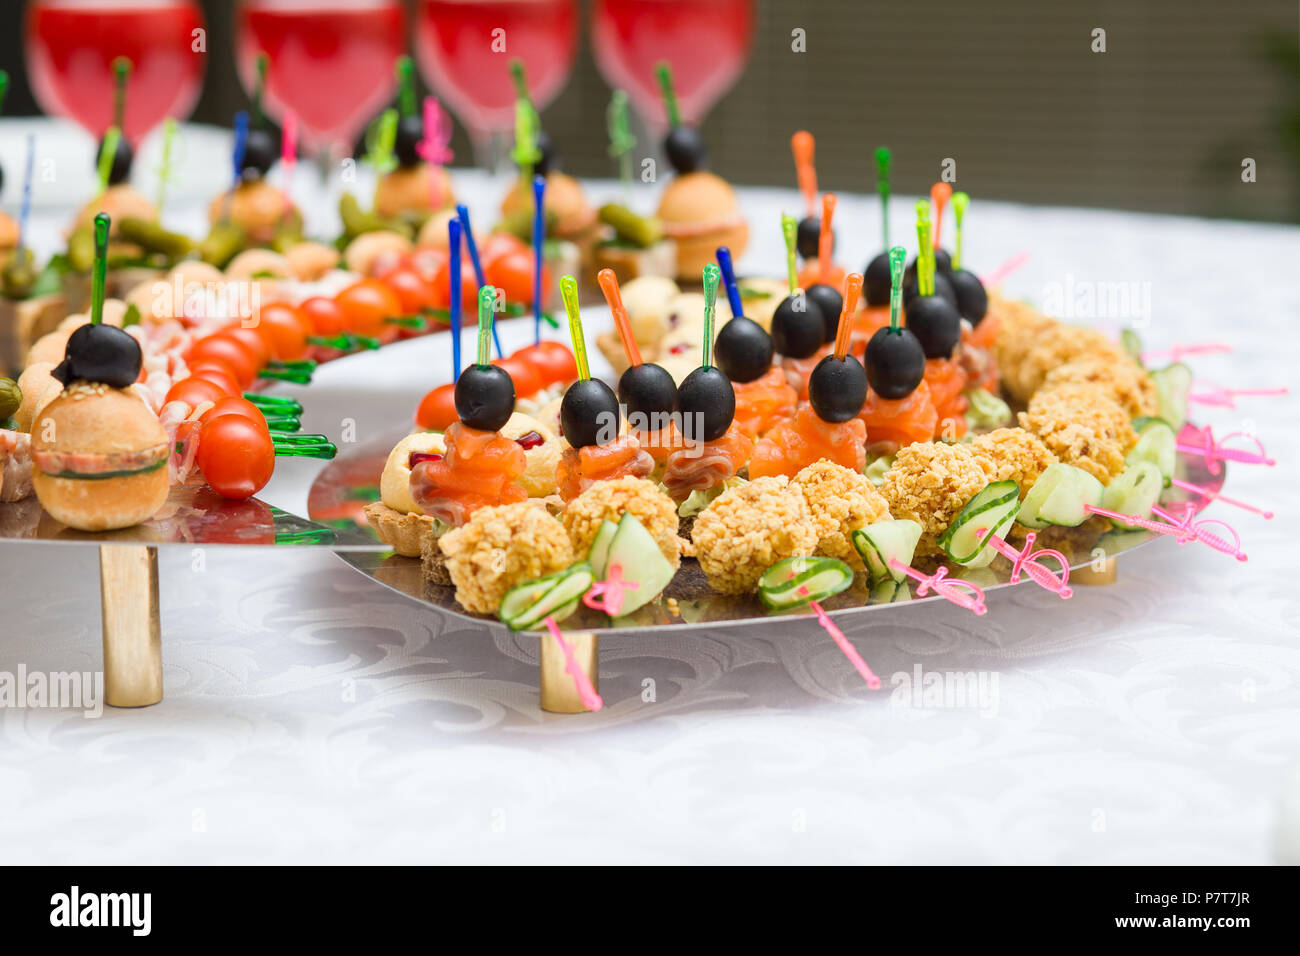 the canape is served on a plate - Stock Image